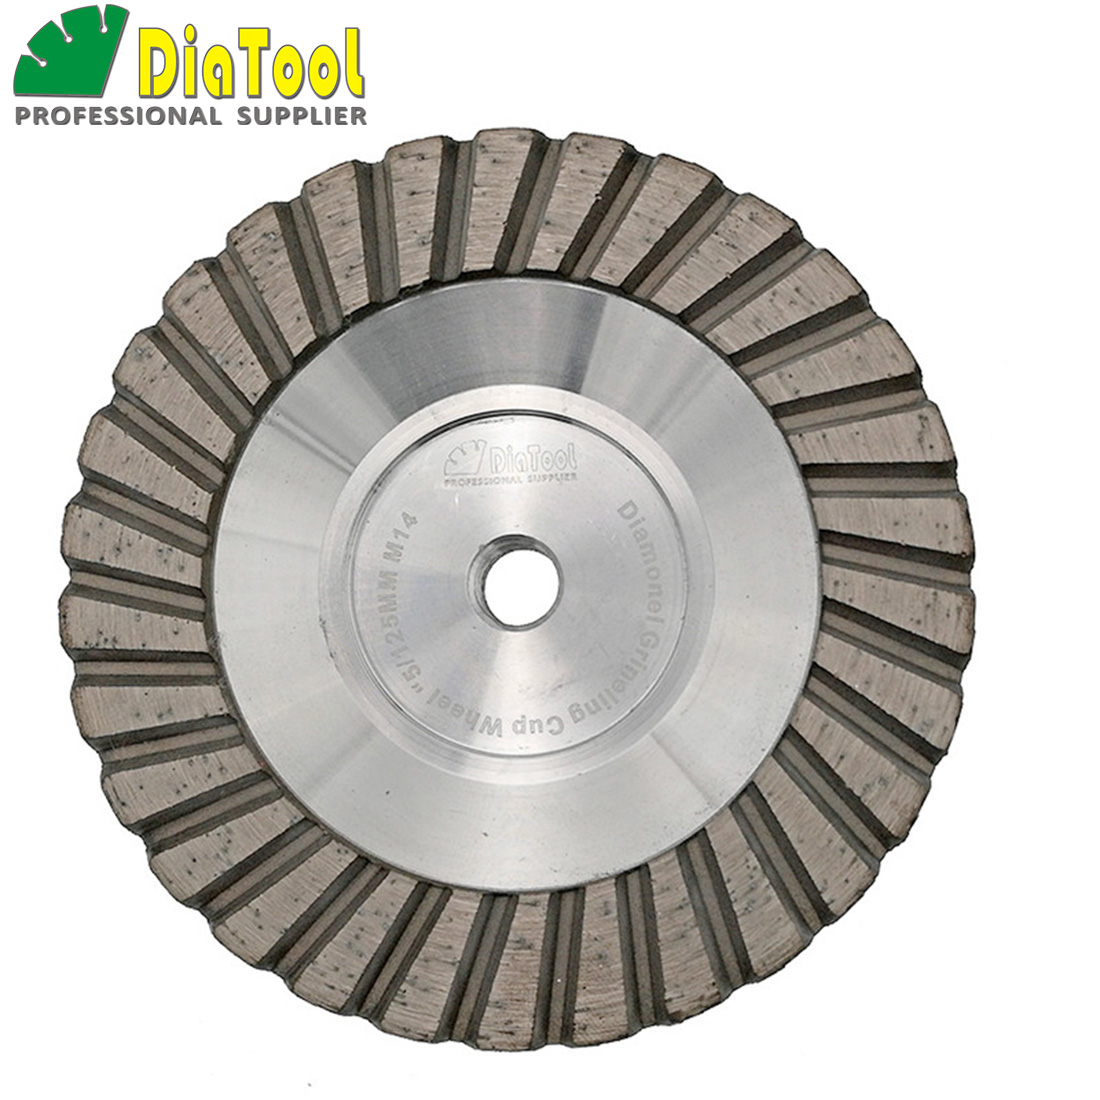 DIATOOL 1pc Diameter 5 inch Aluminum Based Grinding Cup Wheel M14 Thread or 5/8-11 Thread Diamond Fine Grinding Great Finishing ноутбук lenovo v310 15ikb 80t3001erk